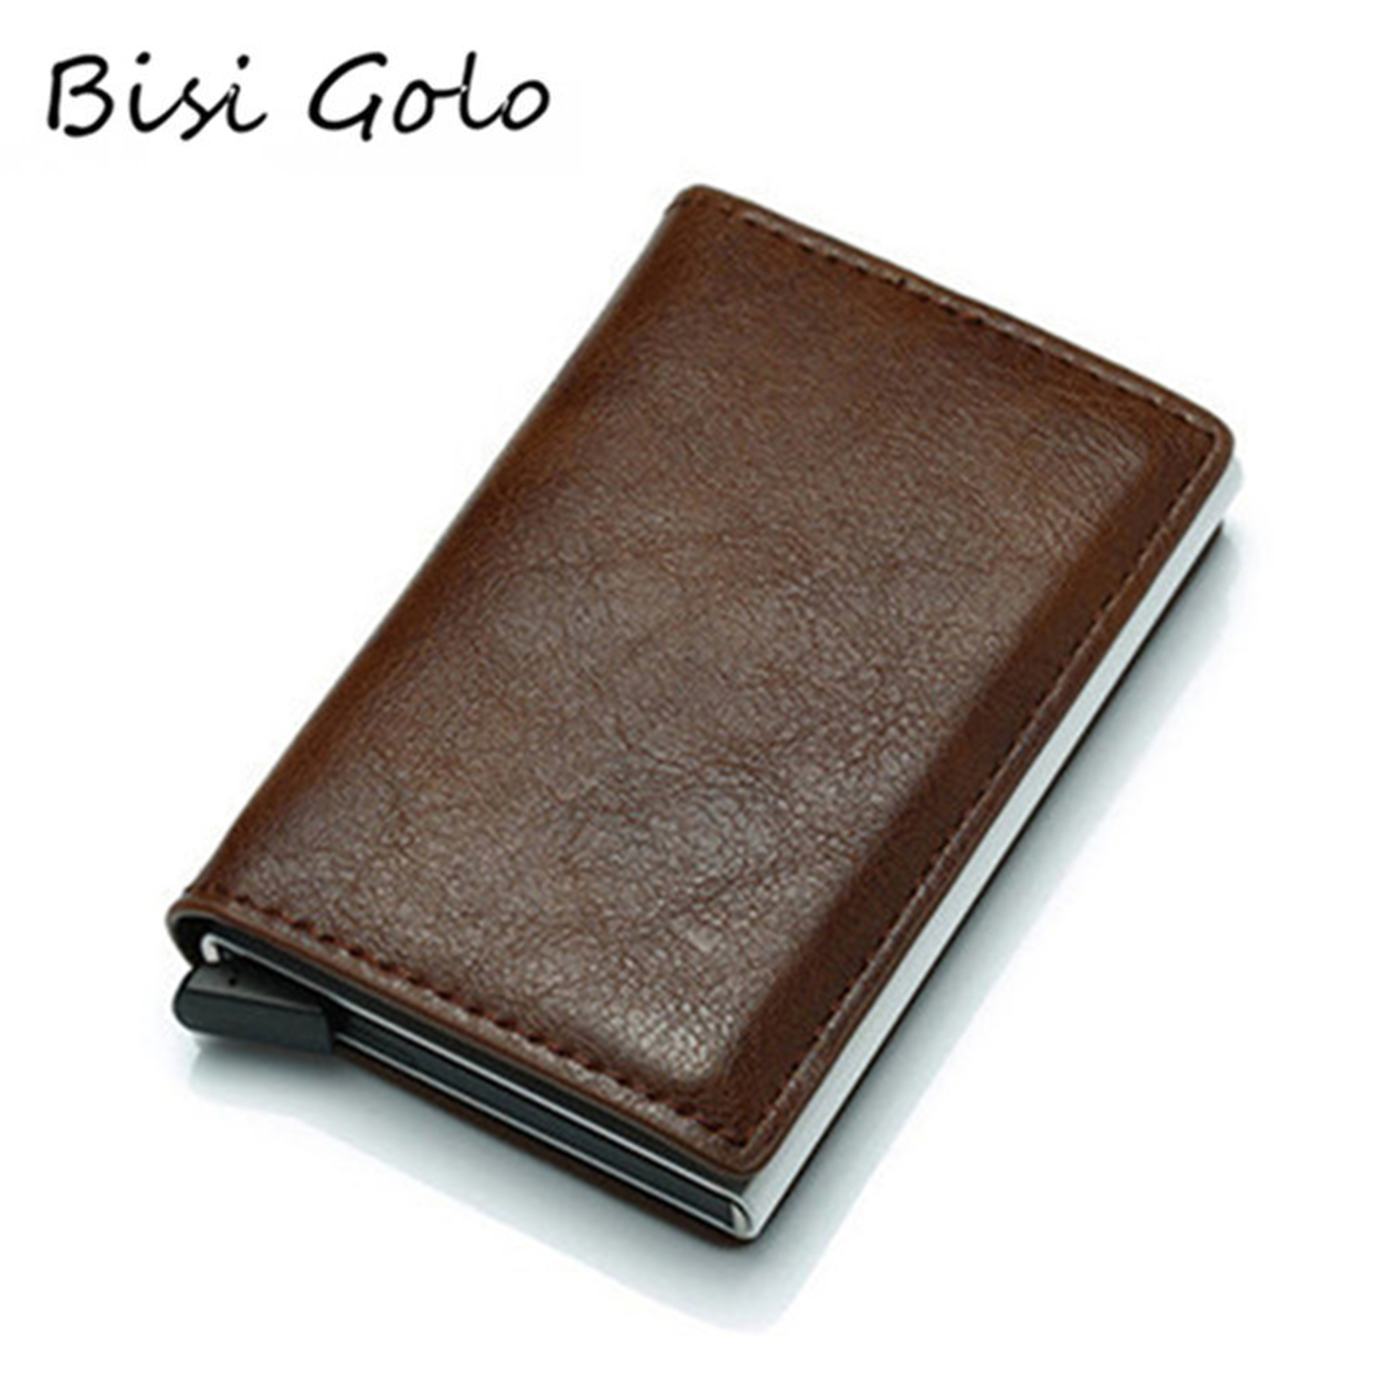 BISI GORO Antitheft Wallet Card Holder Hasp RFID Aluminum Unisex Metal High Quality Crazy Horse PU Leather